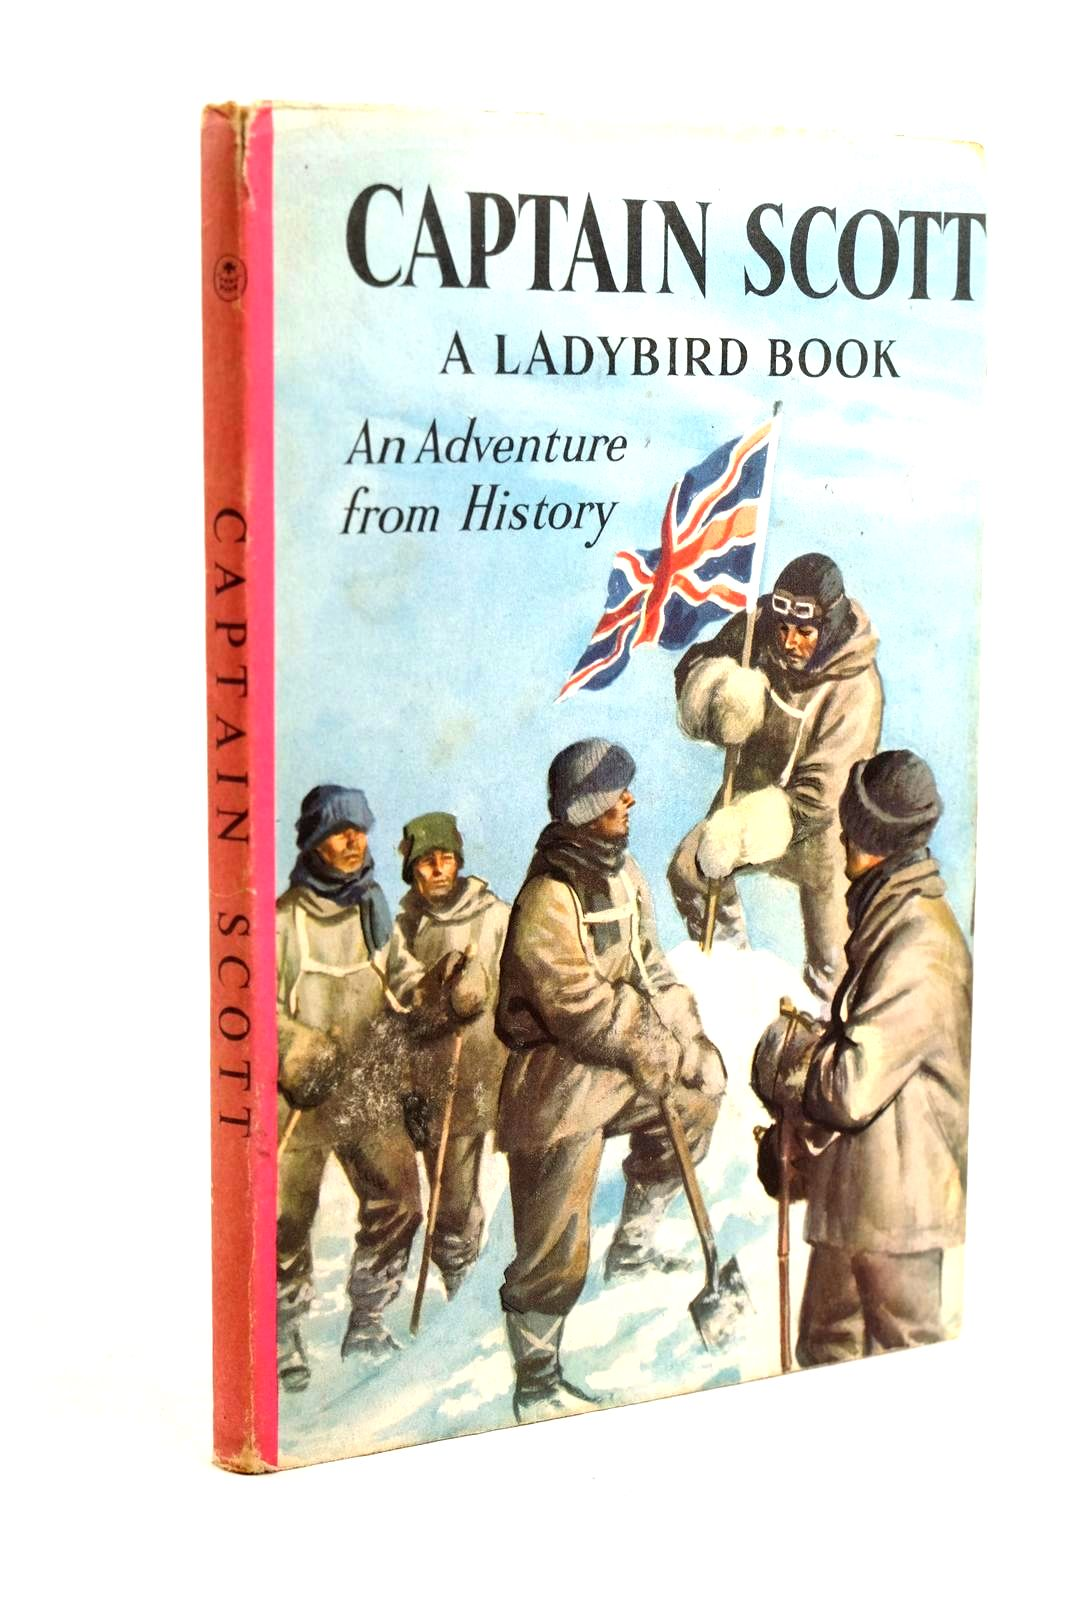 Photo of CAPTAIN SCOTT written by Peach, L. Du Garde illustrated by Kenney, John published by Wills & Hepworth Ltd. (STOCK CODE: 1320629)  for sale by Stella & Rose's Books